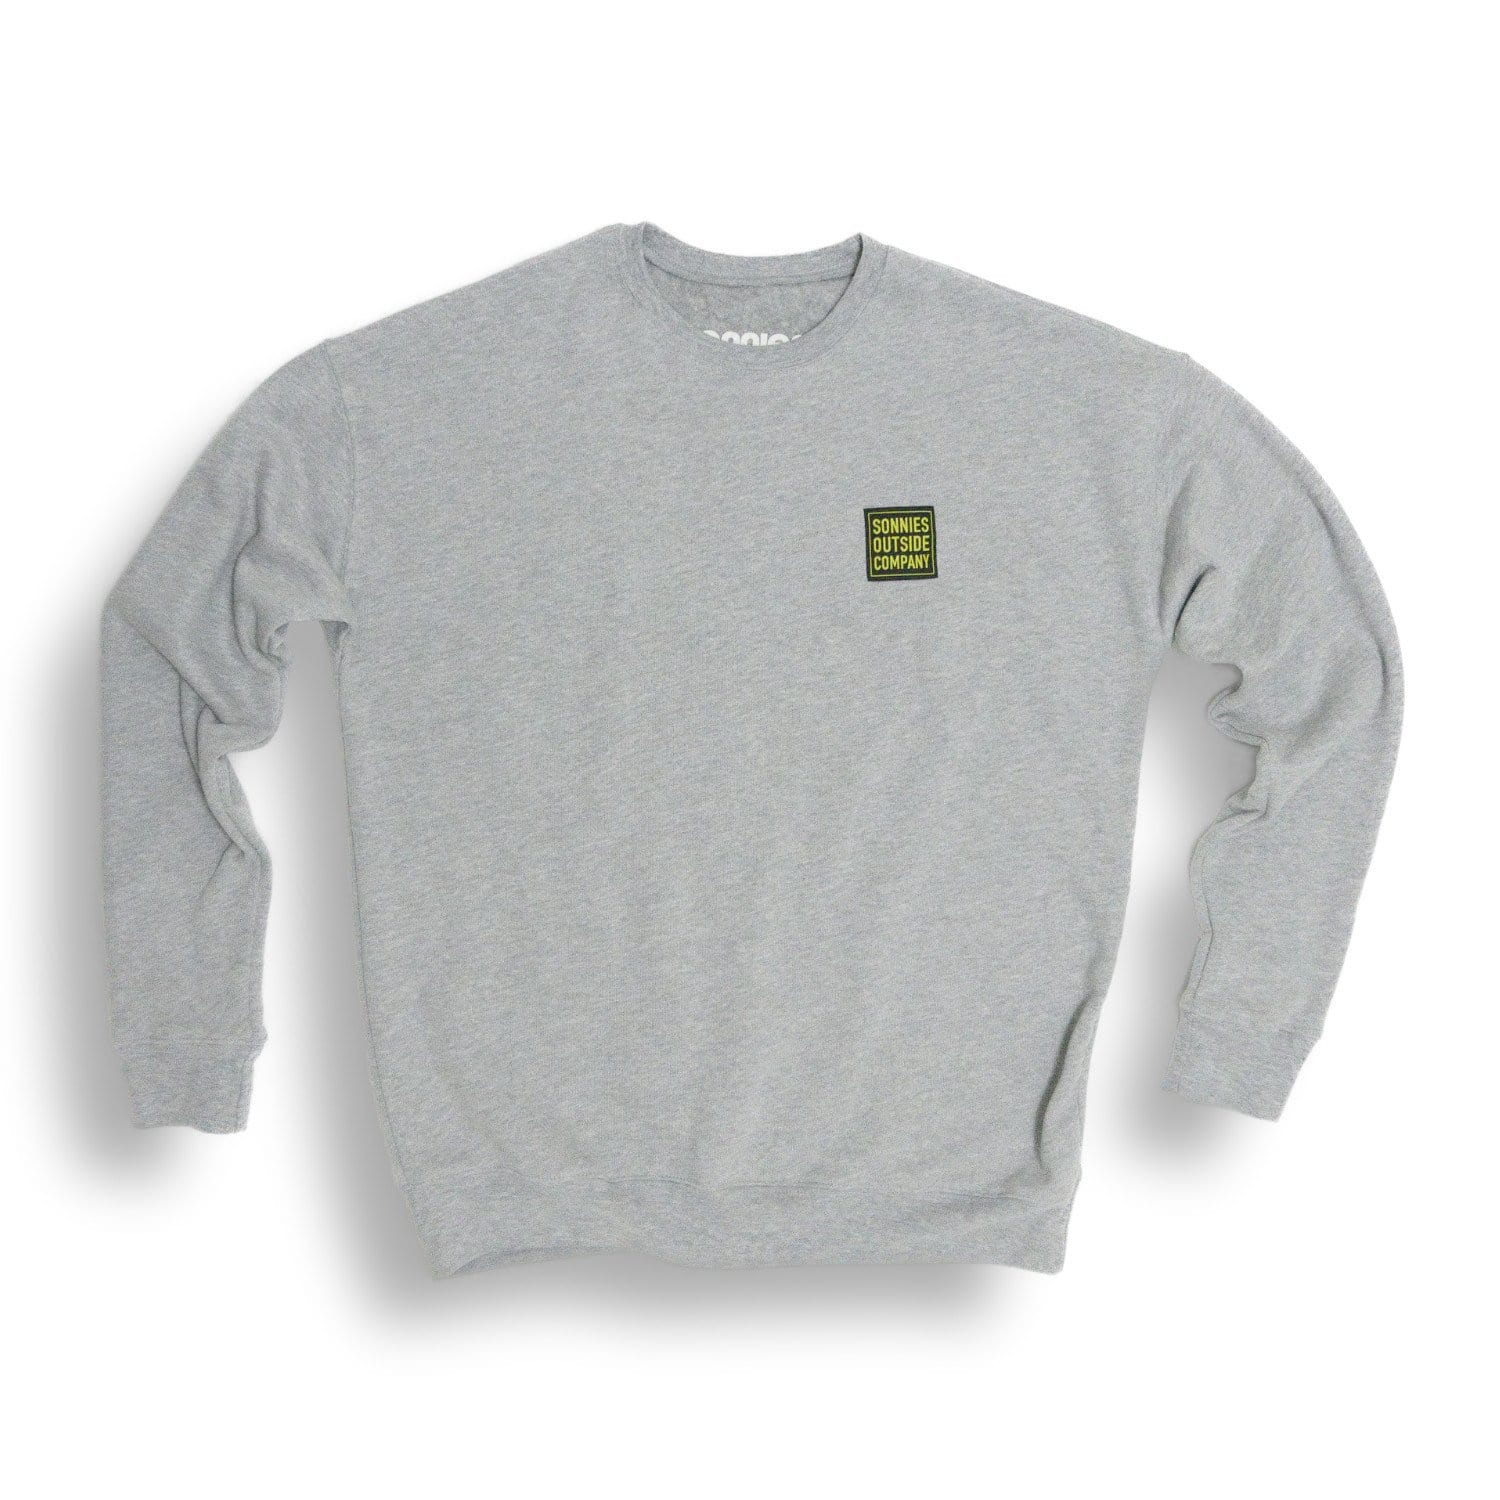 Sonnies Outside Camping Hiking Clothes - Gray Soft Sweatshirt